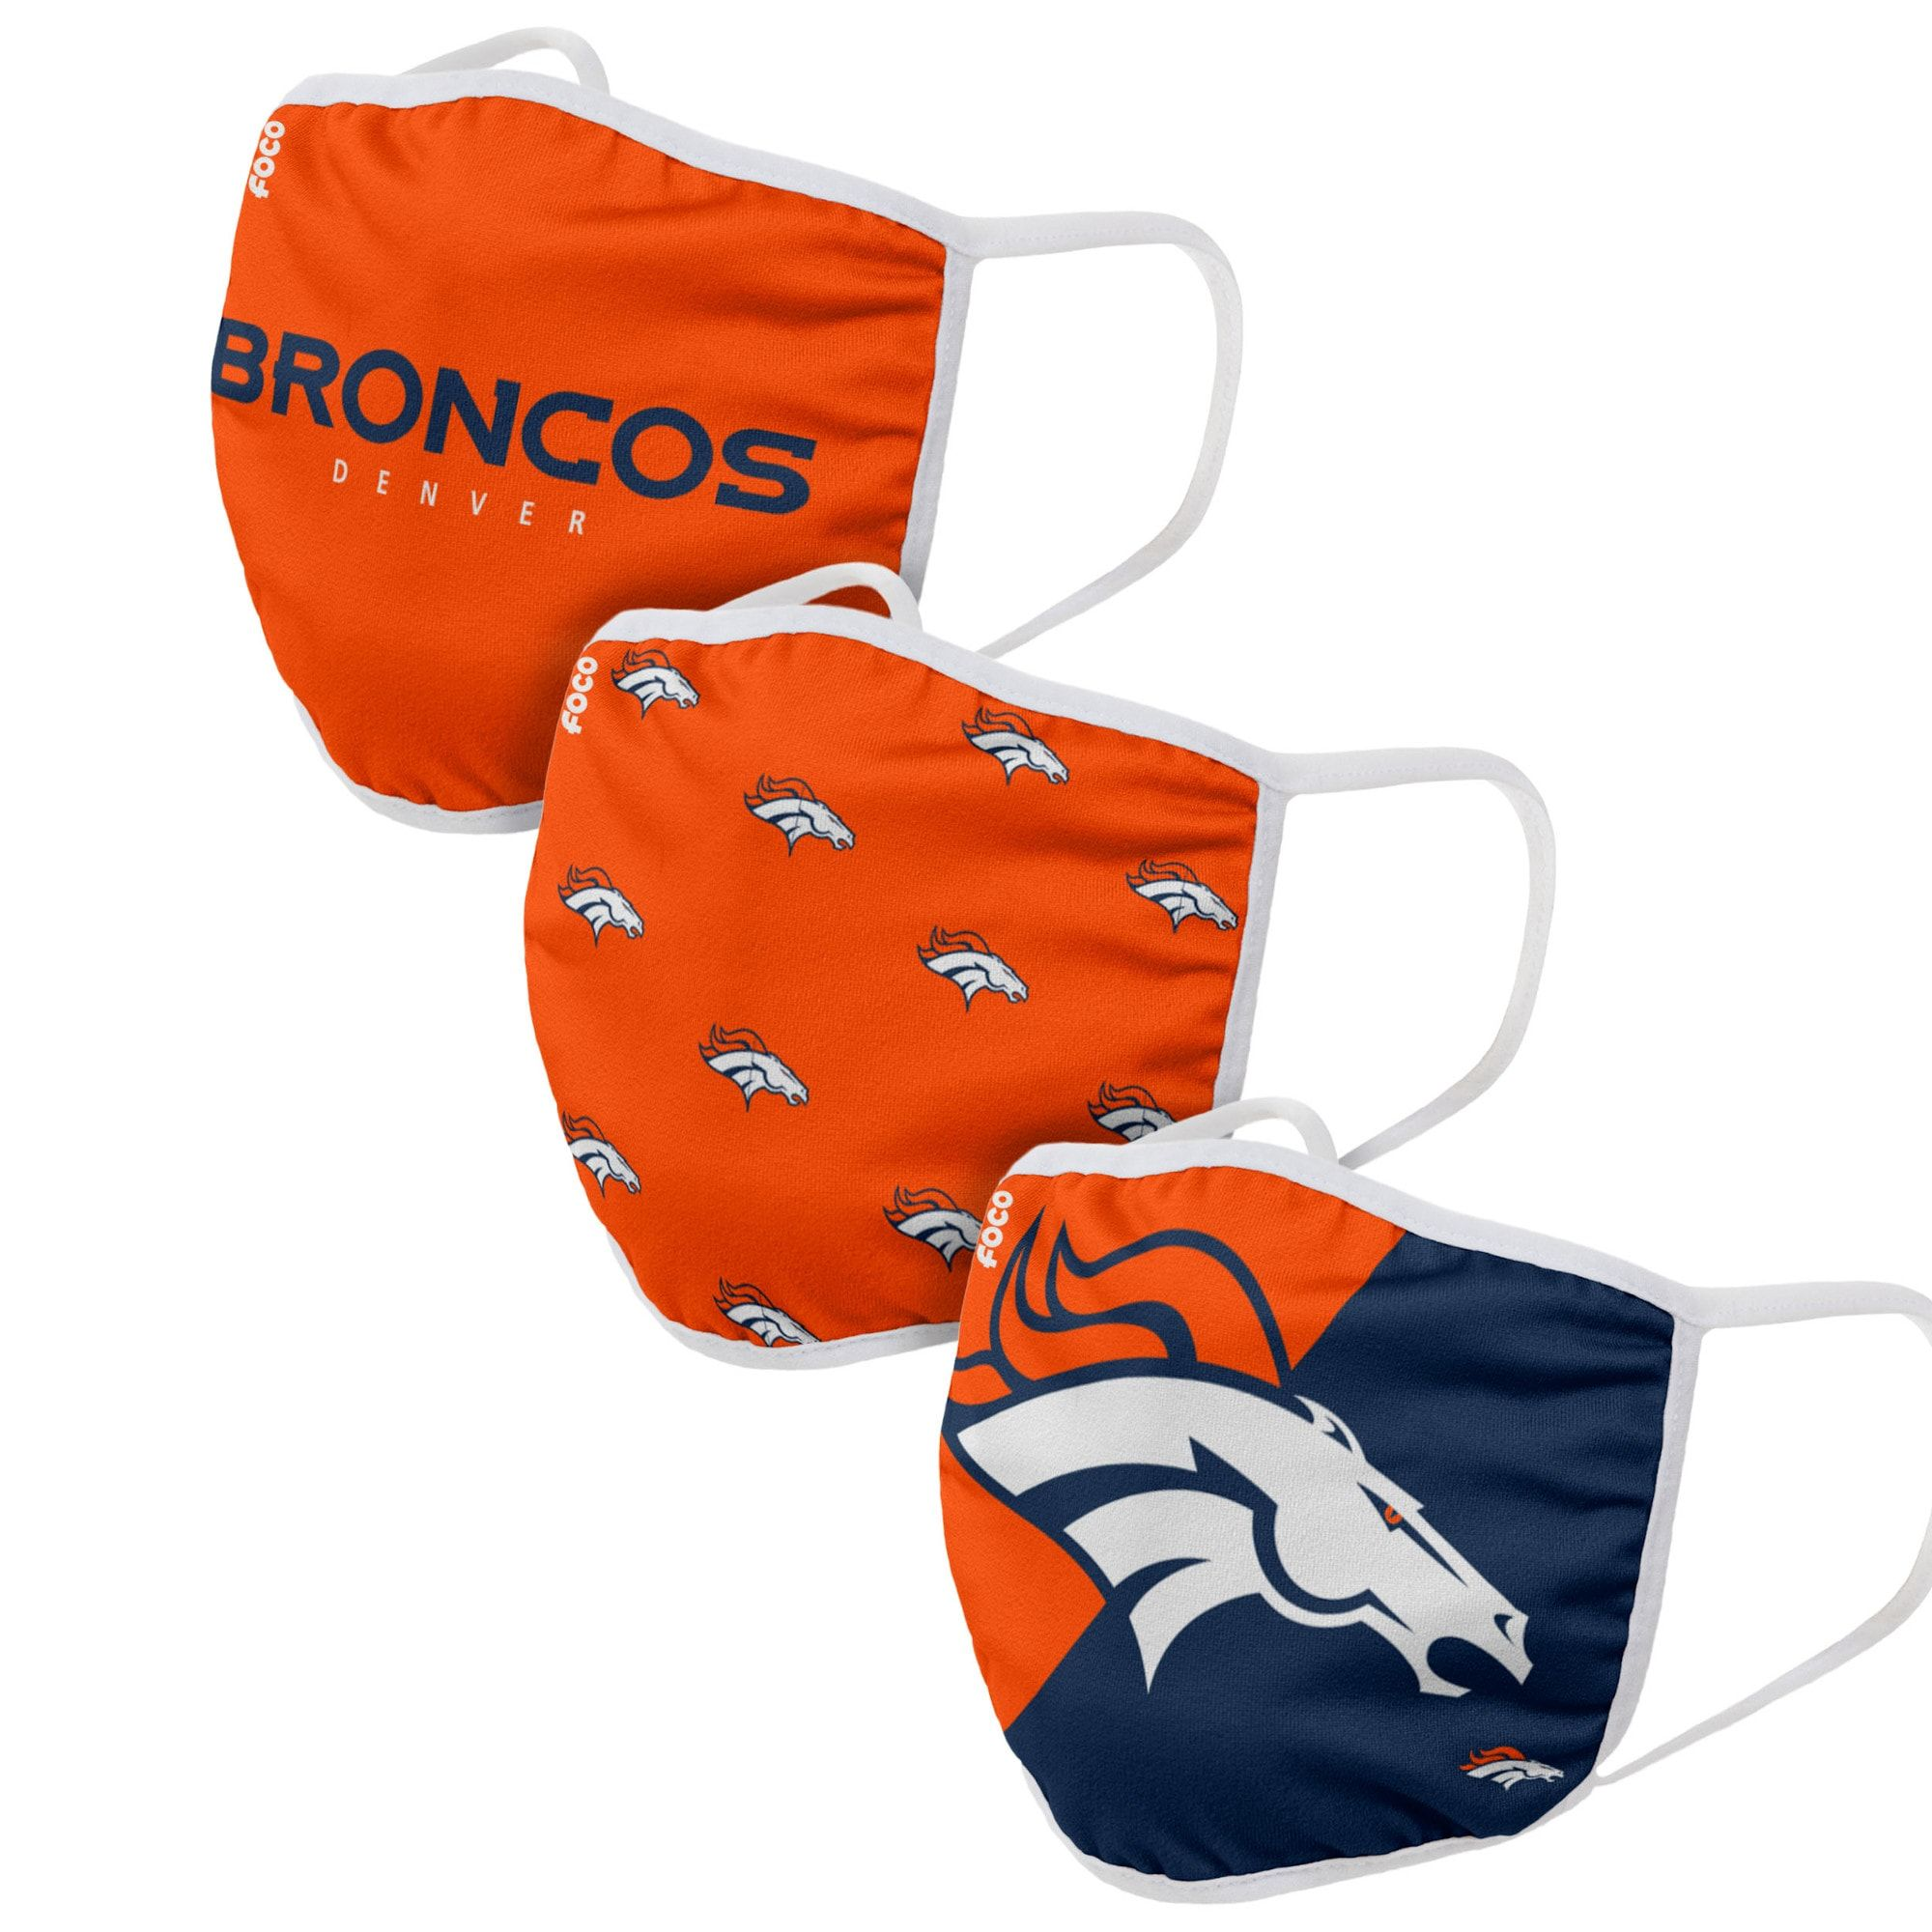 Cover Up While You Represent Your Favorite Team In This Denver Broncos Face Covering 3 Pack From Foco The Nfl And Foco Will In 2020 Face Cover Denver Broncos Broncos